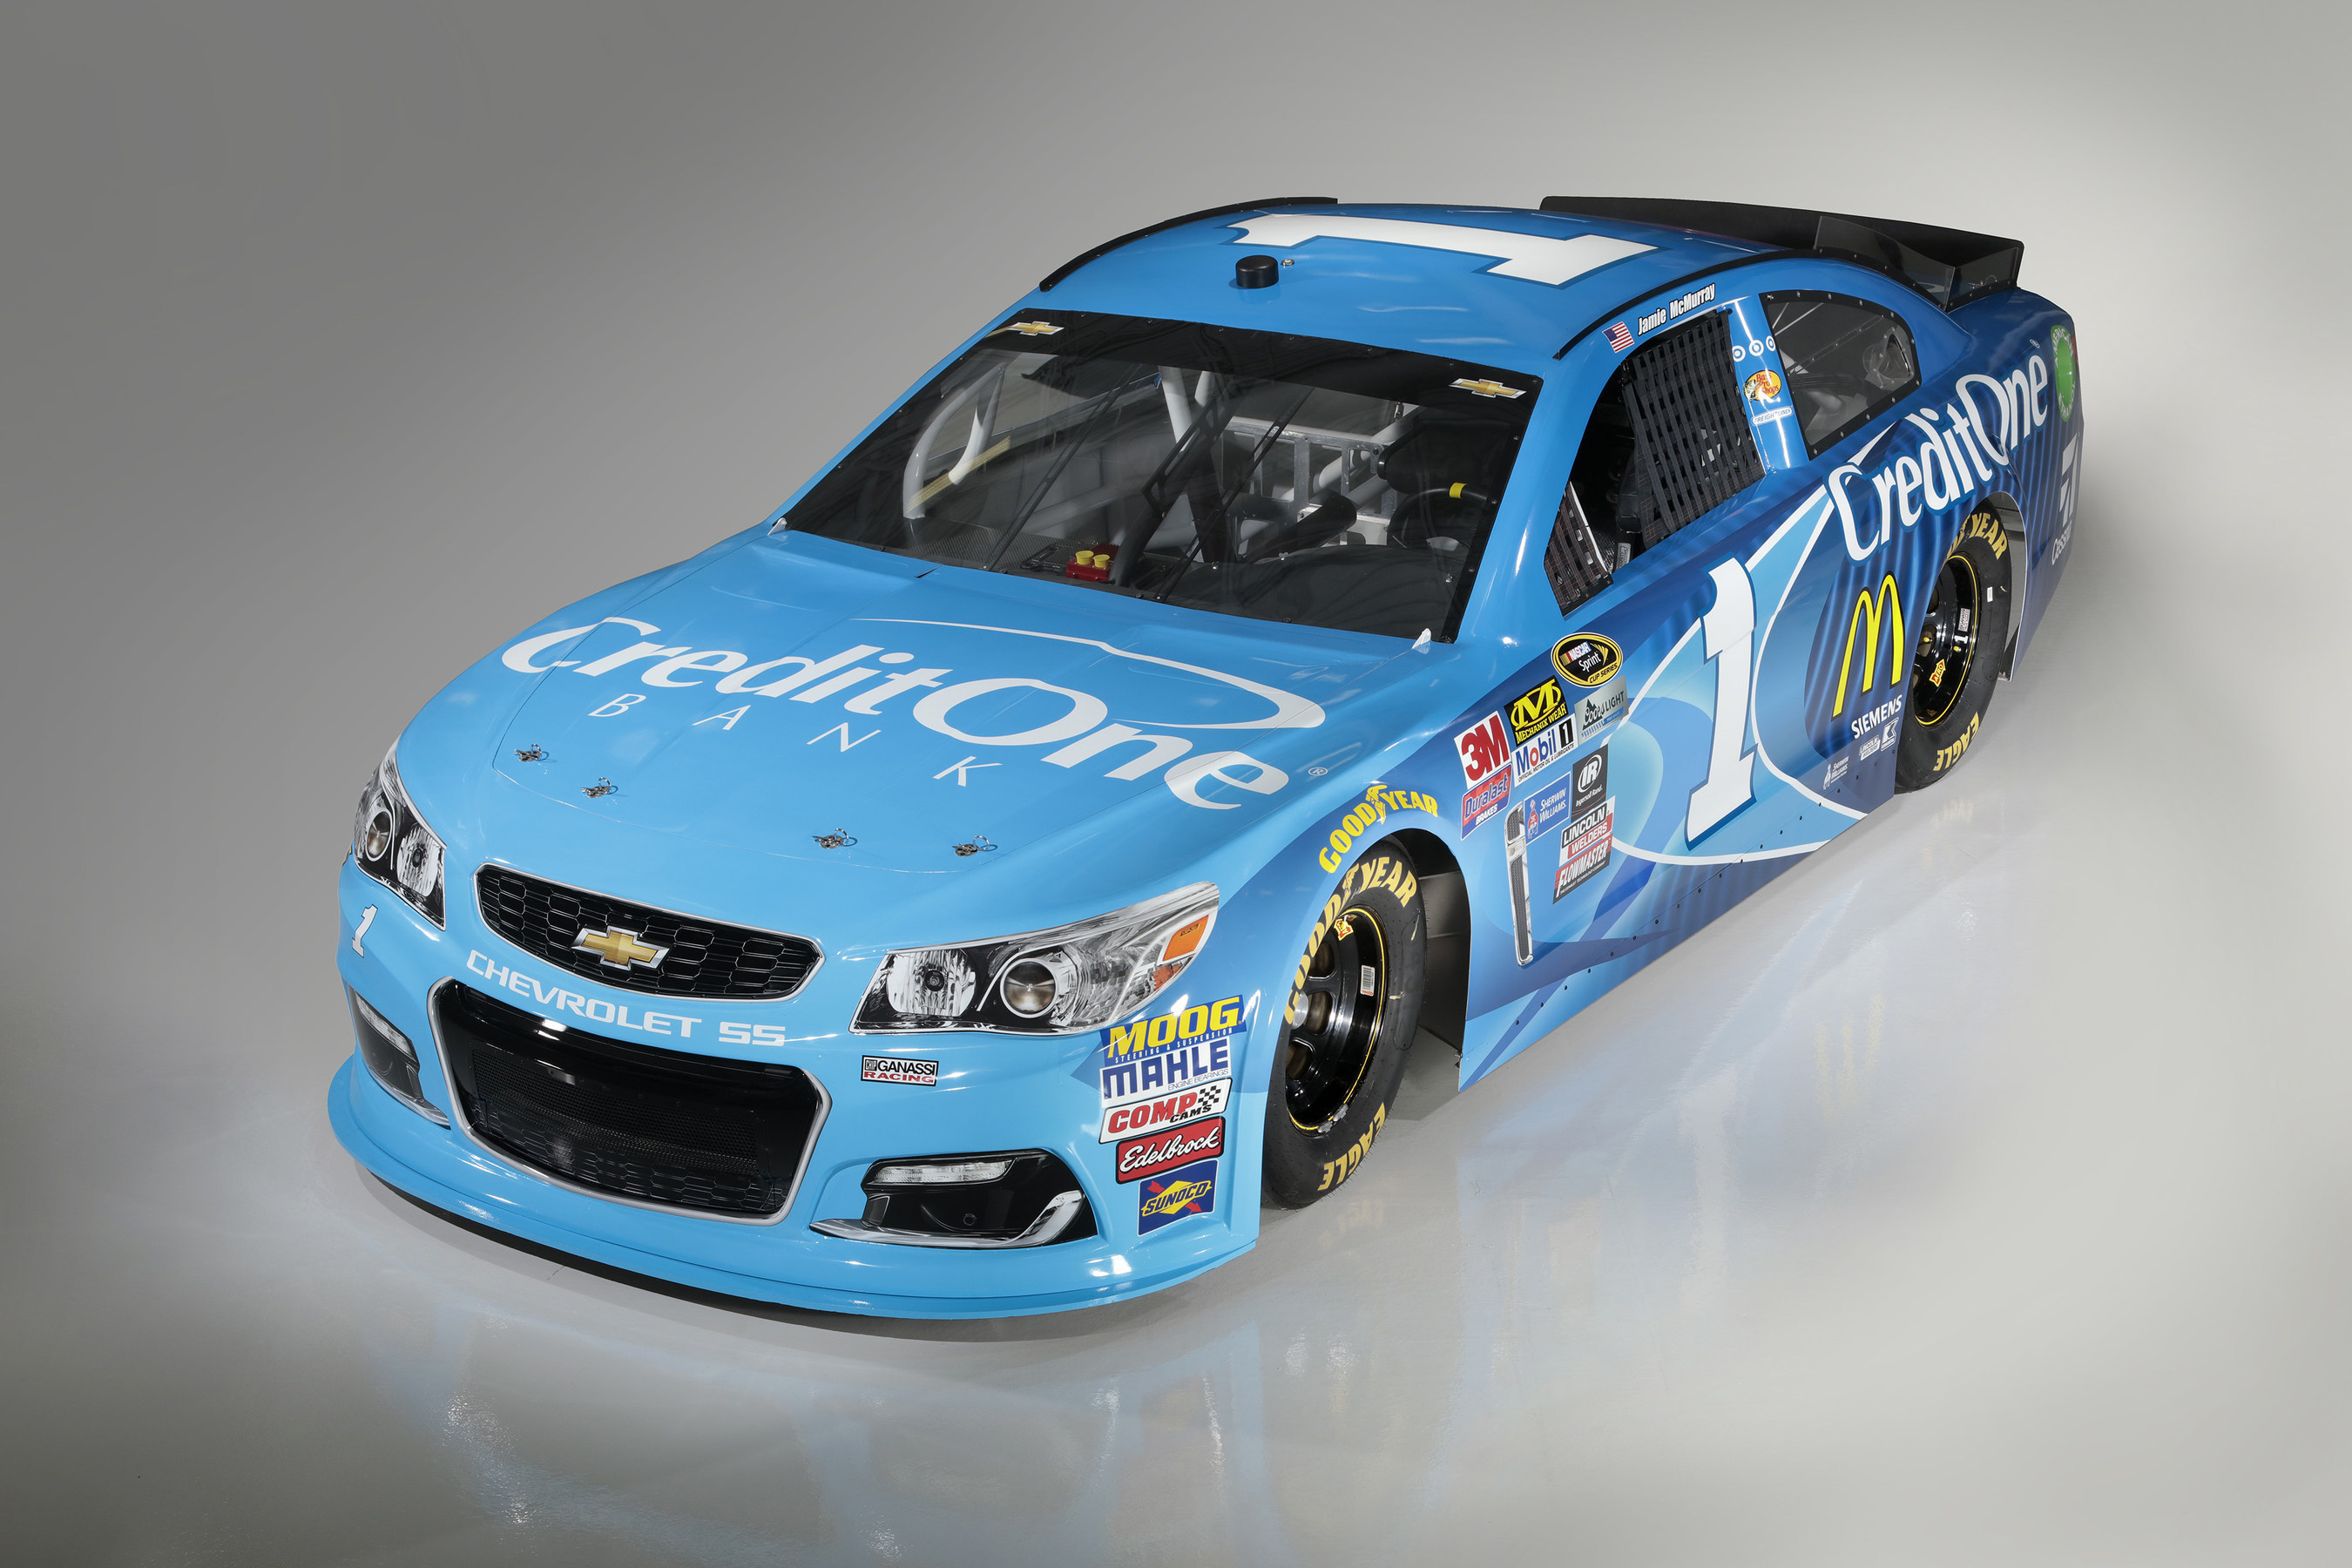 Credit One Bank will make its NASCAR Sprint Cup Series debut as the primary partner on the No. 1 Credit One Bank Chevrolet SS this weekend at Richmond International Raceway.